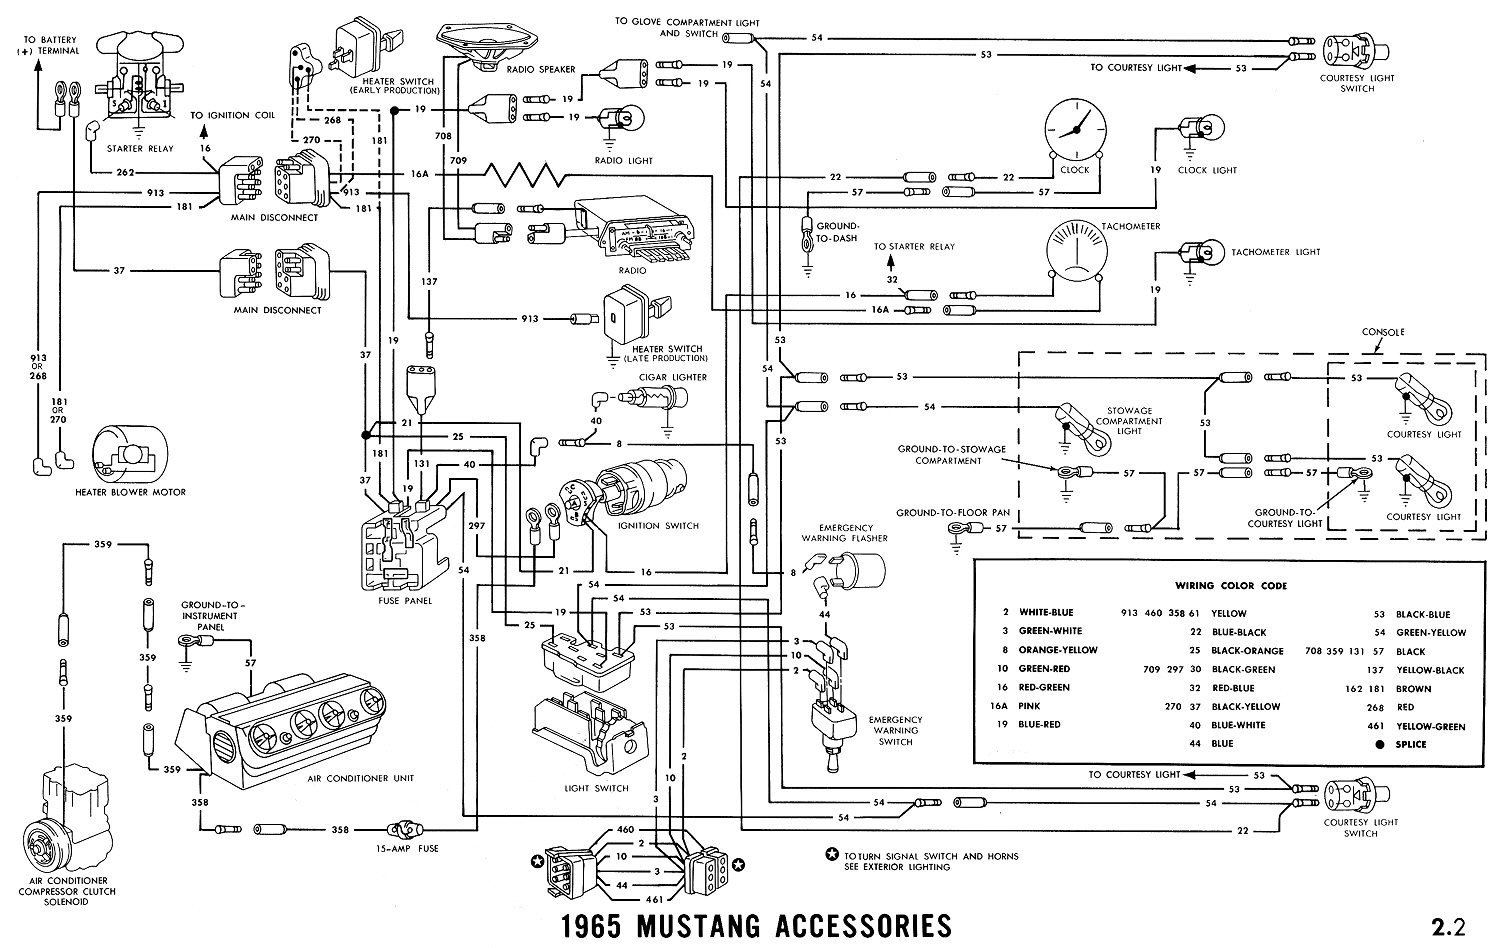 1965i 1965 mustang wiring diagrams average joe restoration 1969 mustang ignition switch wiring diagram at soozxer.org